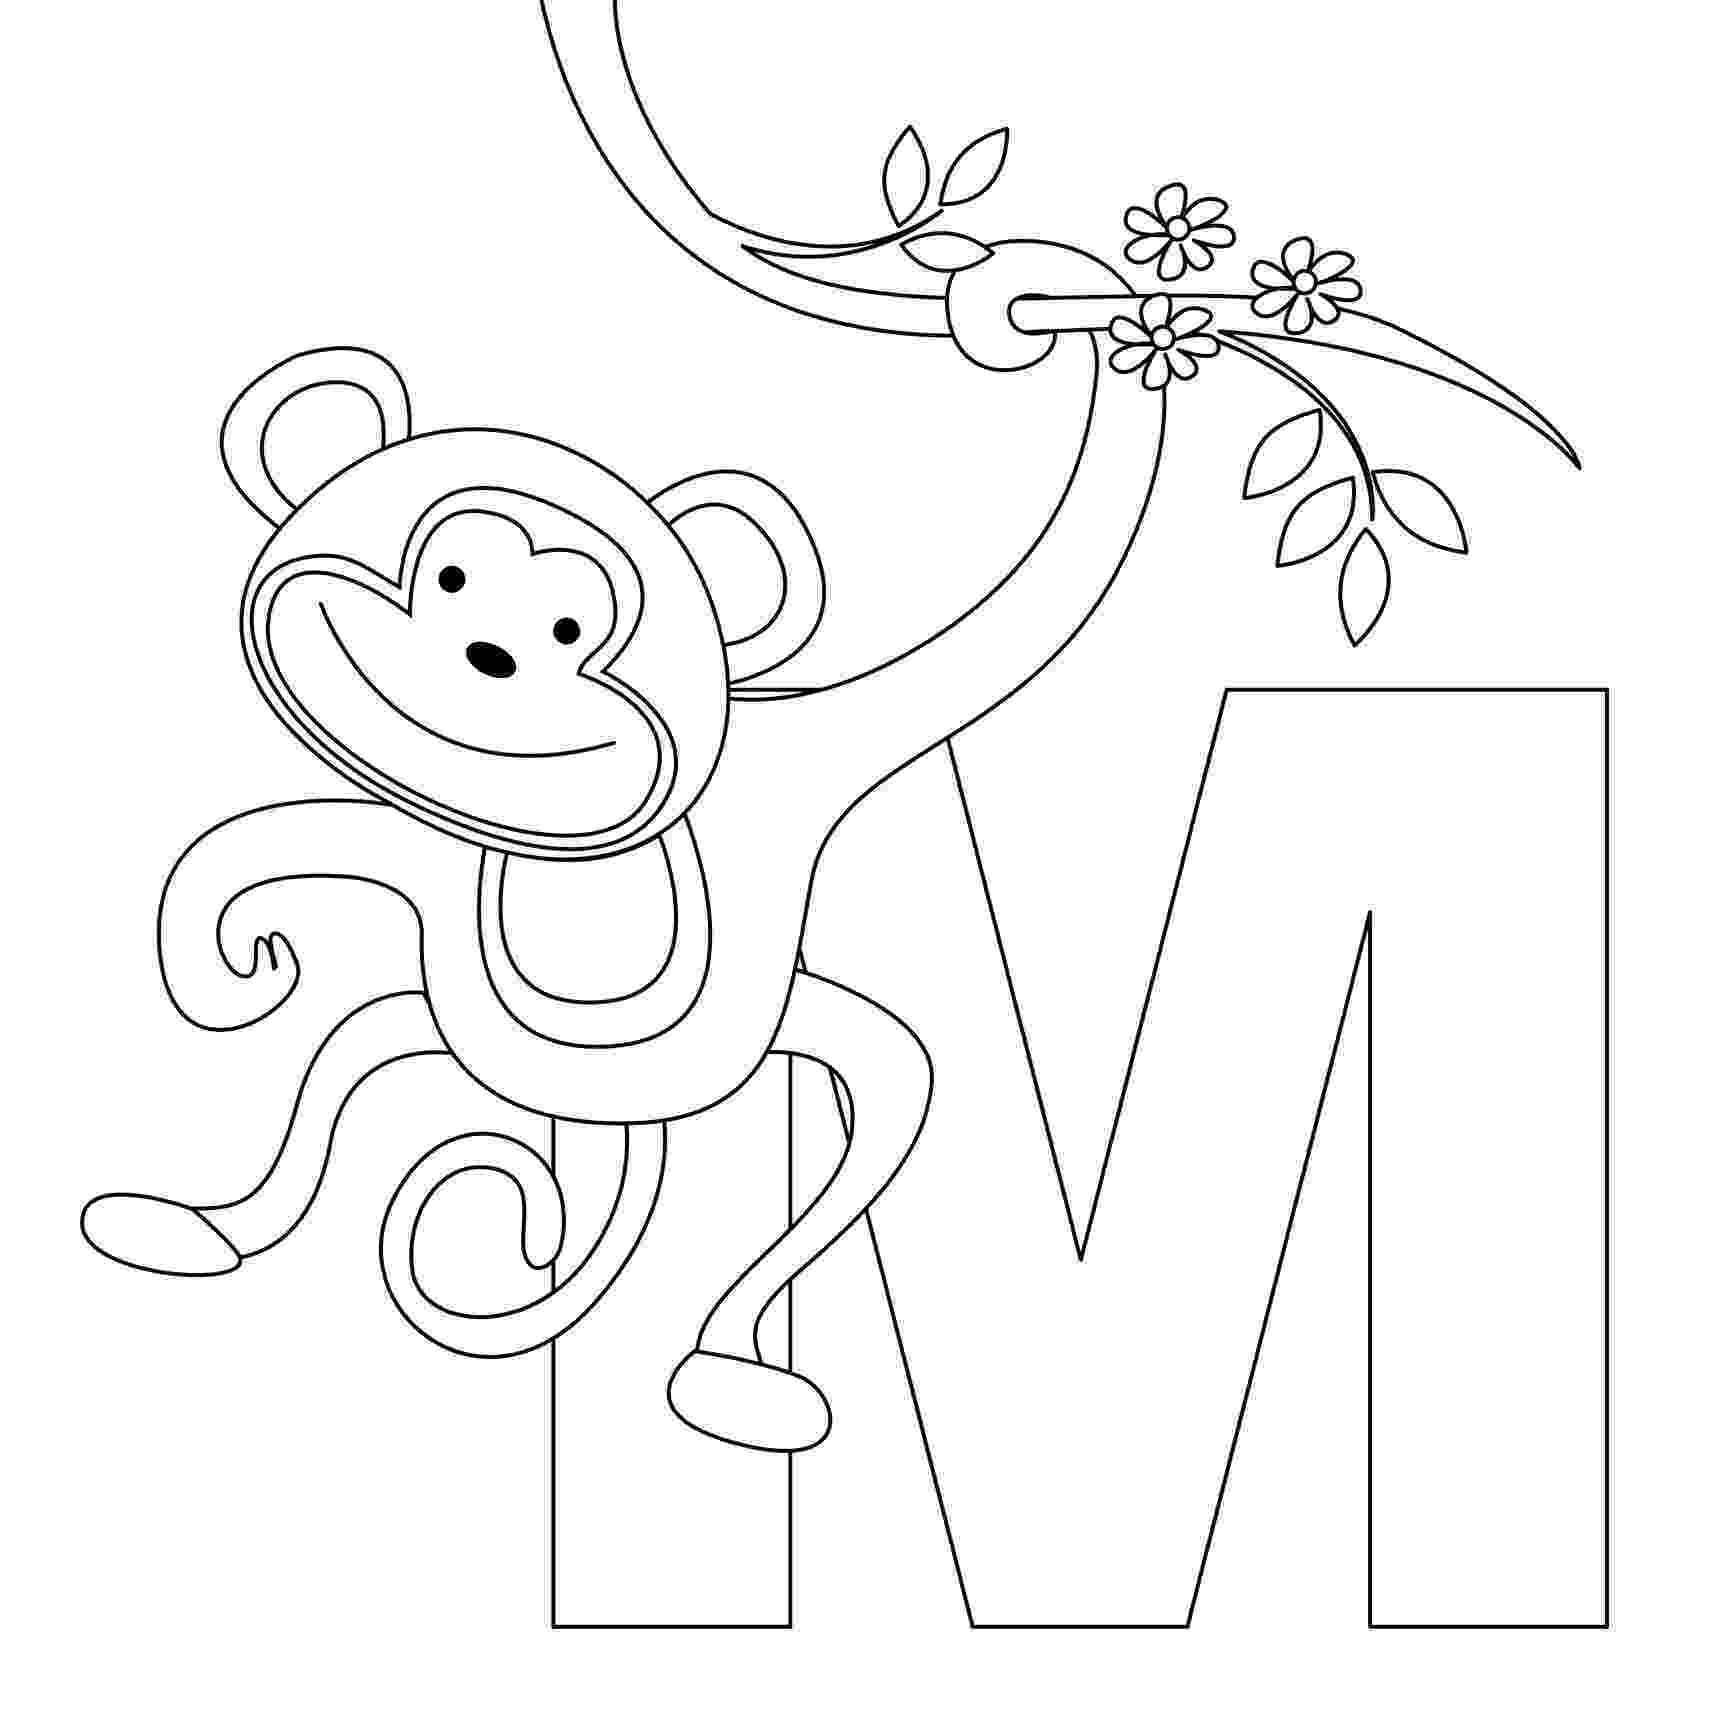 monkey color pages monkey template animal templates free premium templates color monkey pages